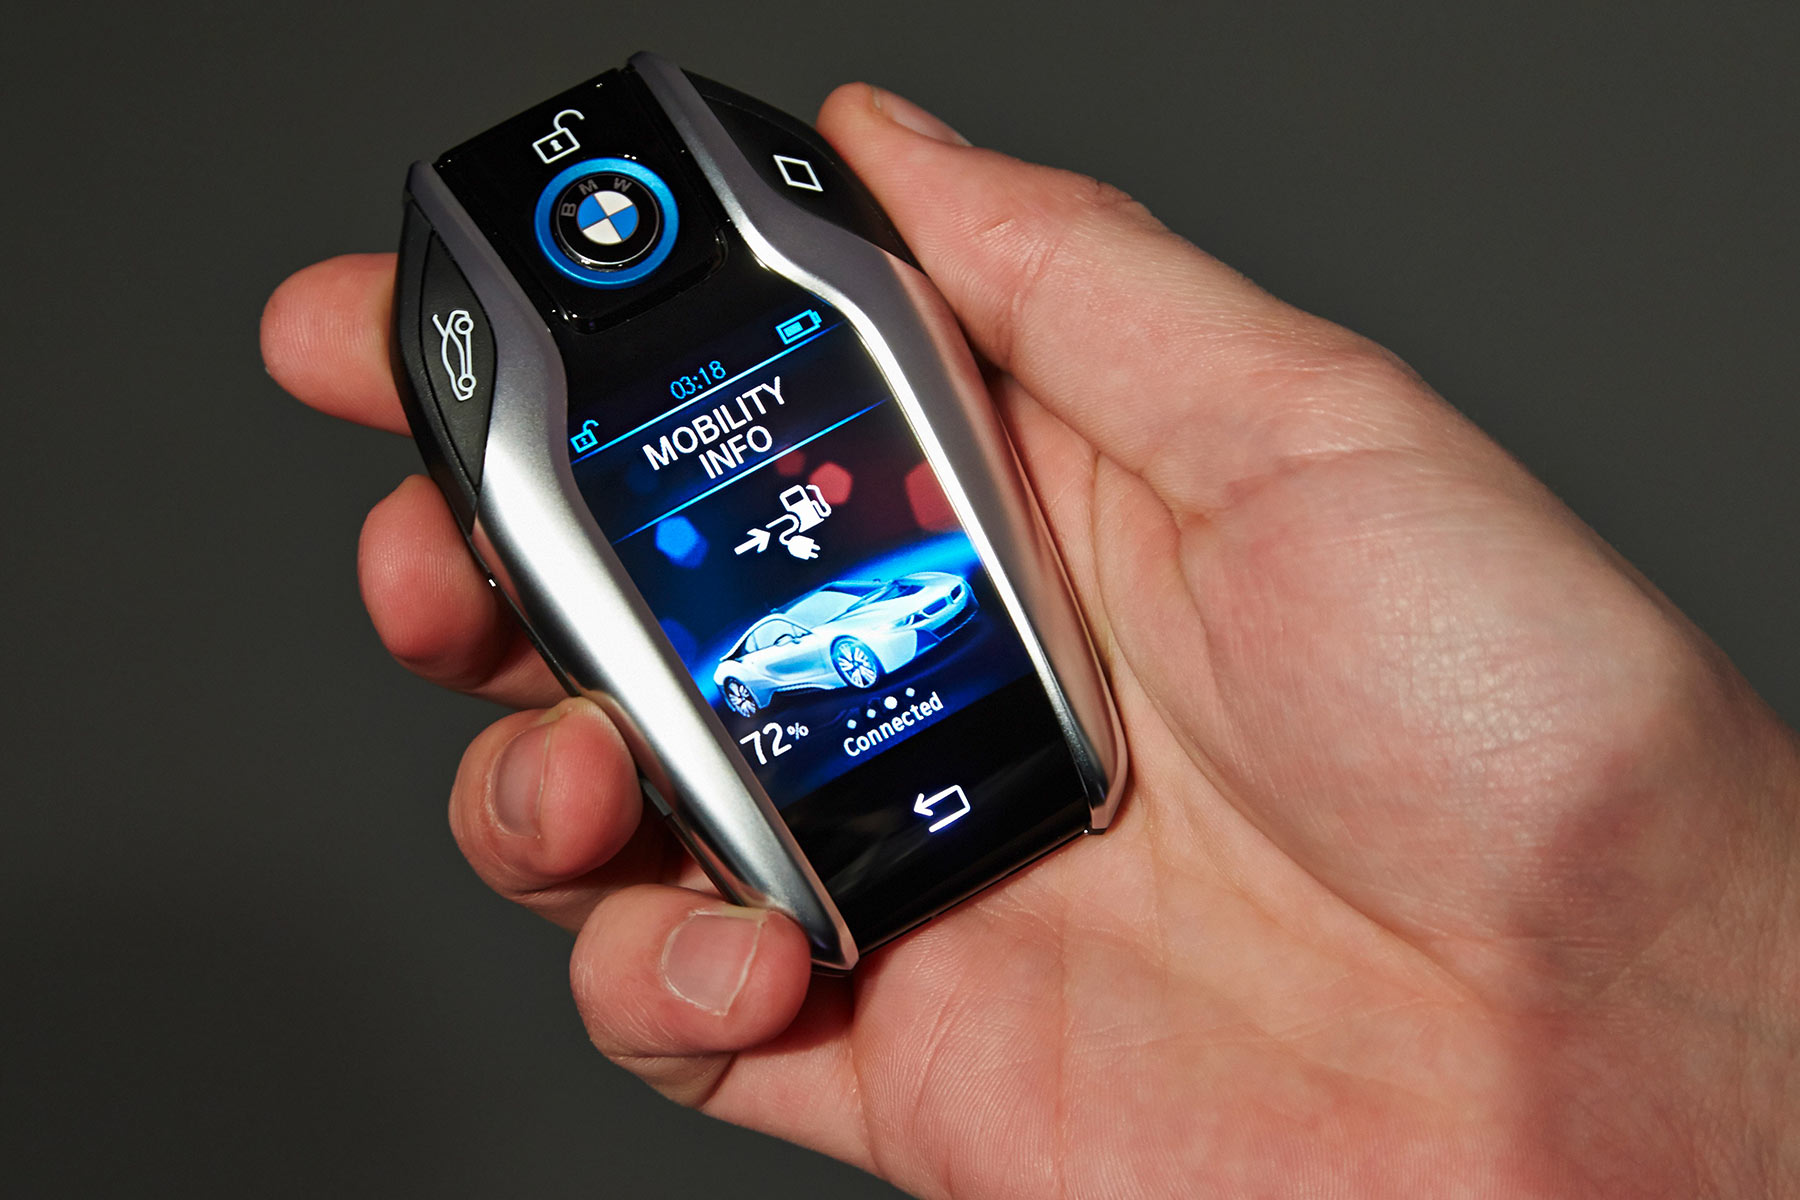 Keyless Car Theft How To Prevent It And Stay Safe Vehicle Relay Attack Is New Tech Useful